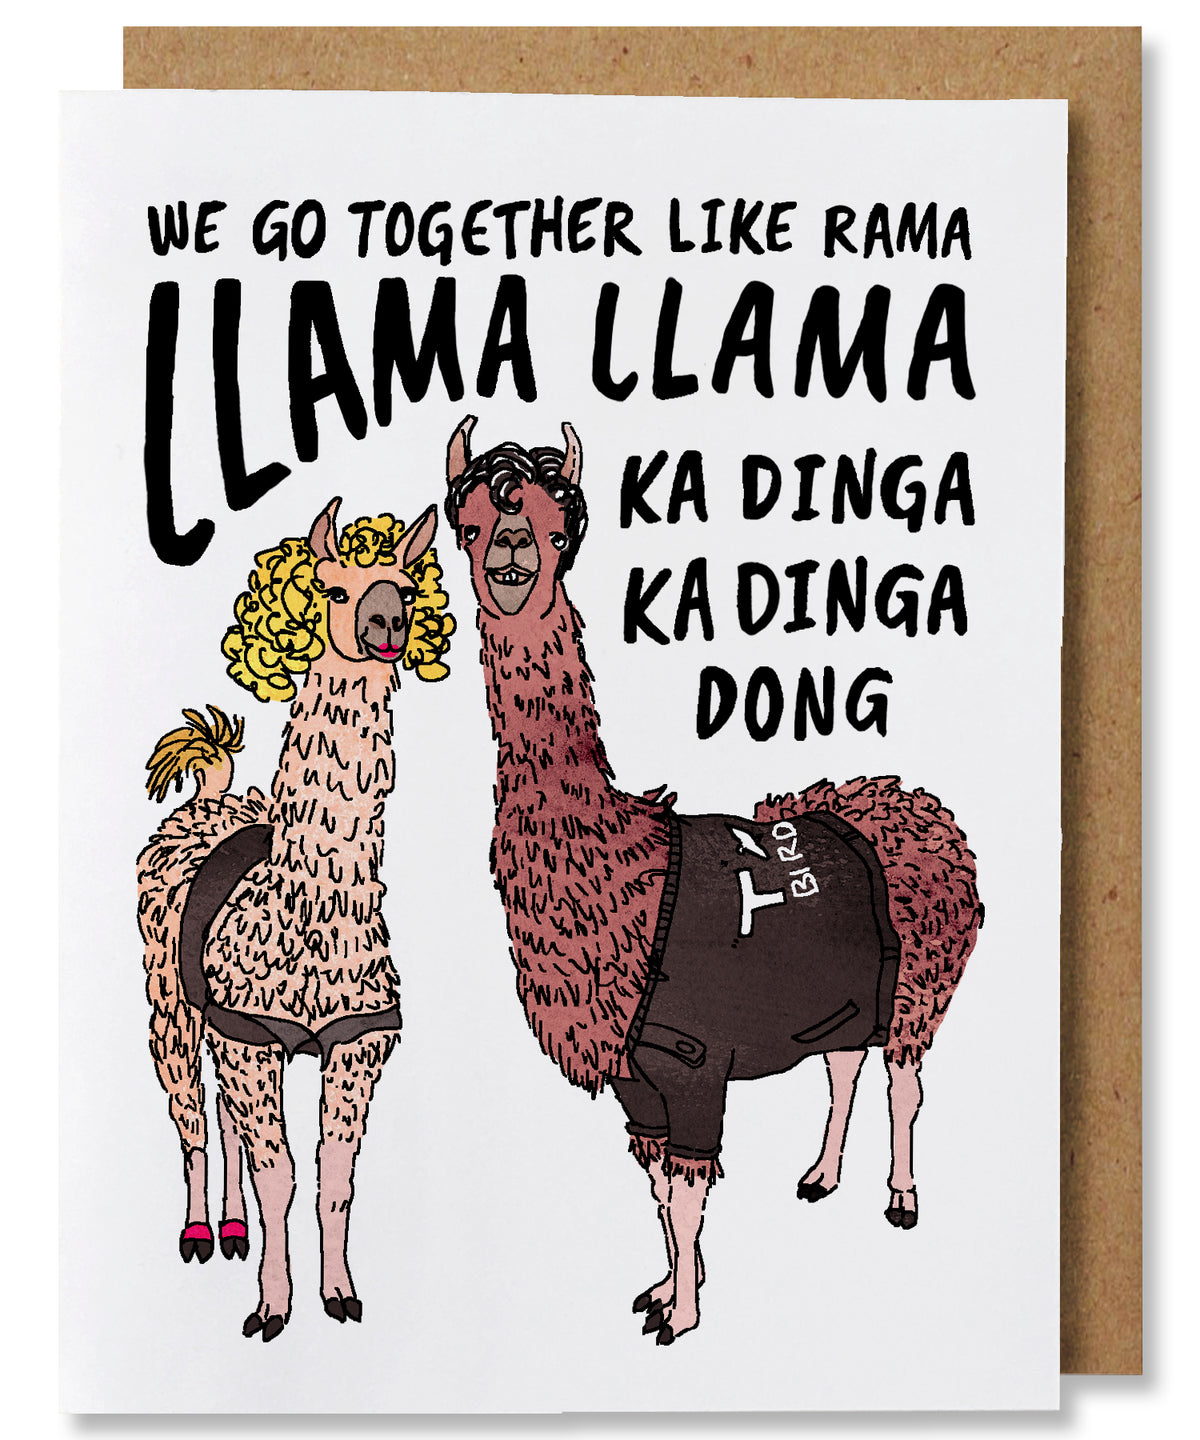 Llama Llama Greeting Card - Heart of the Home PA